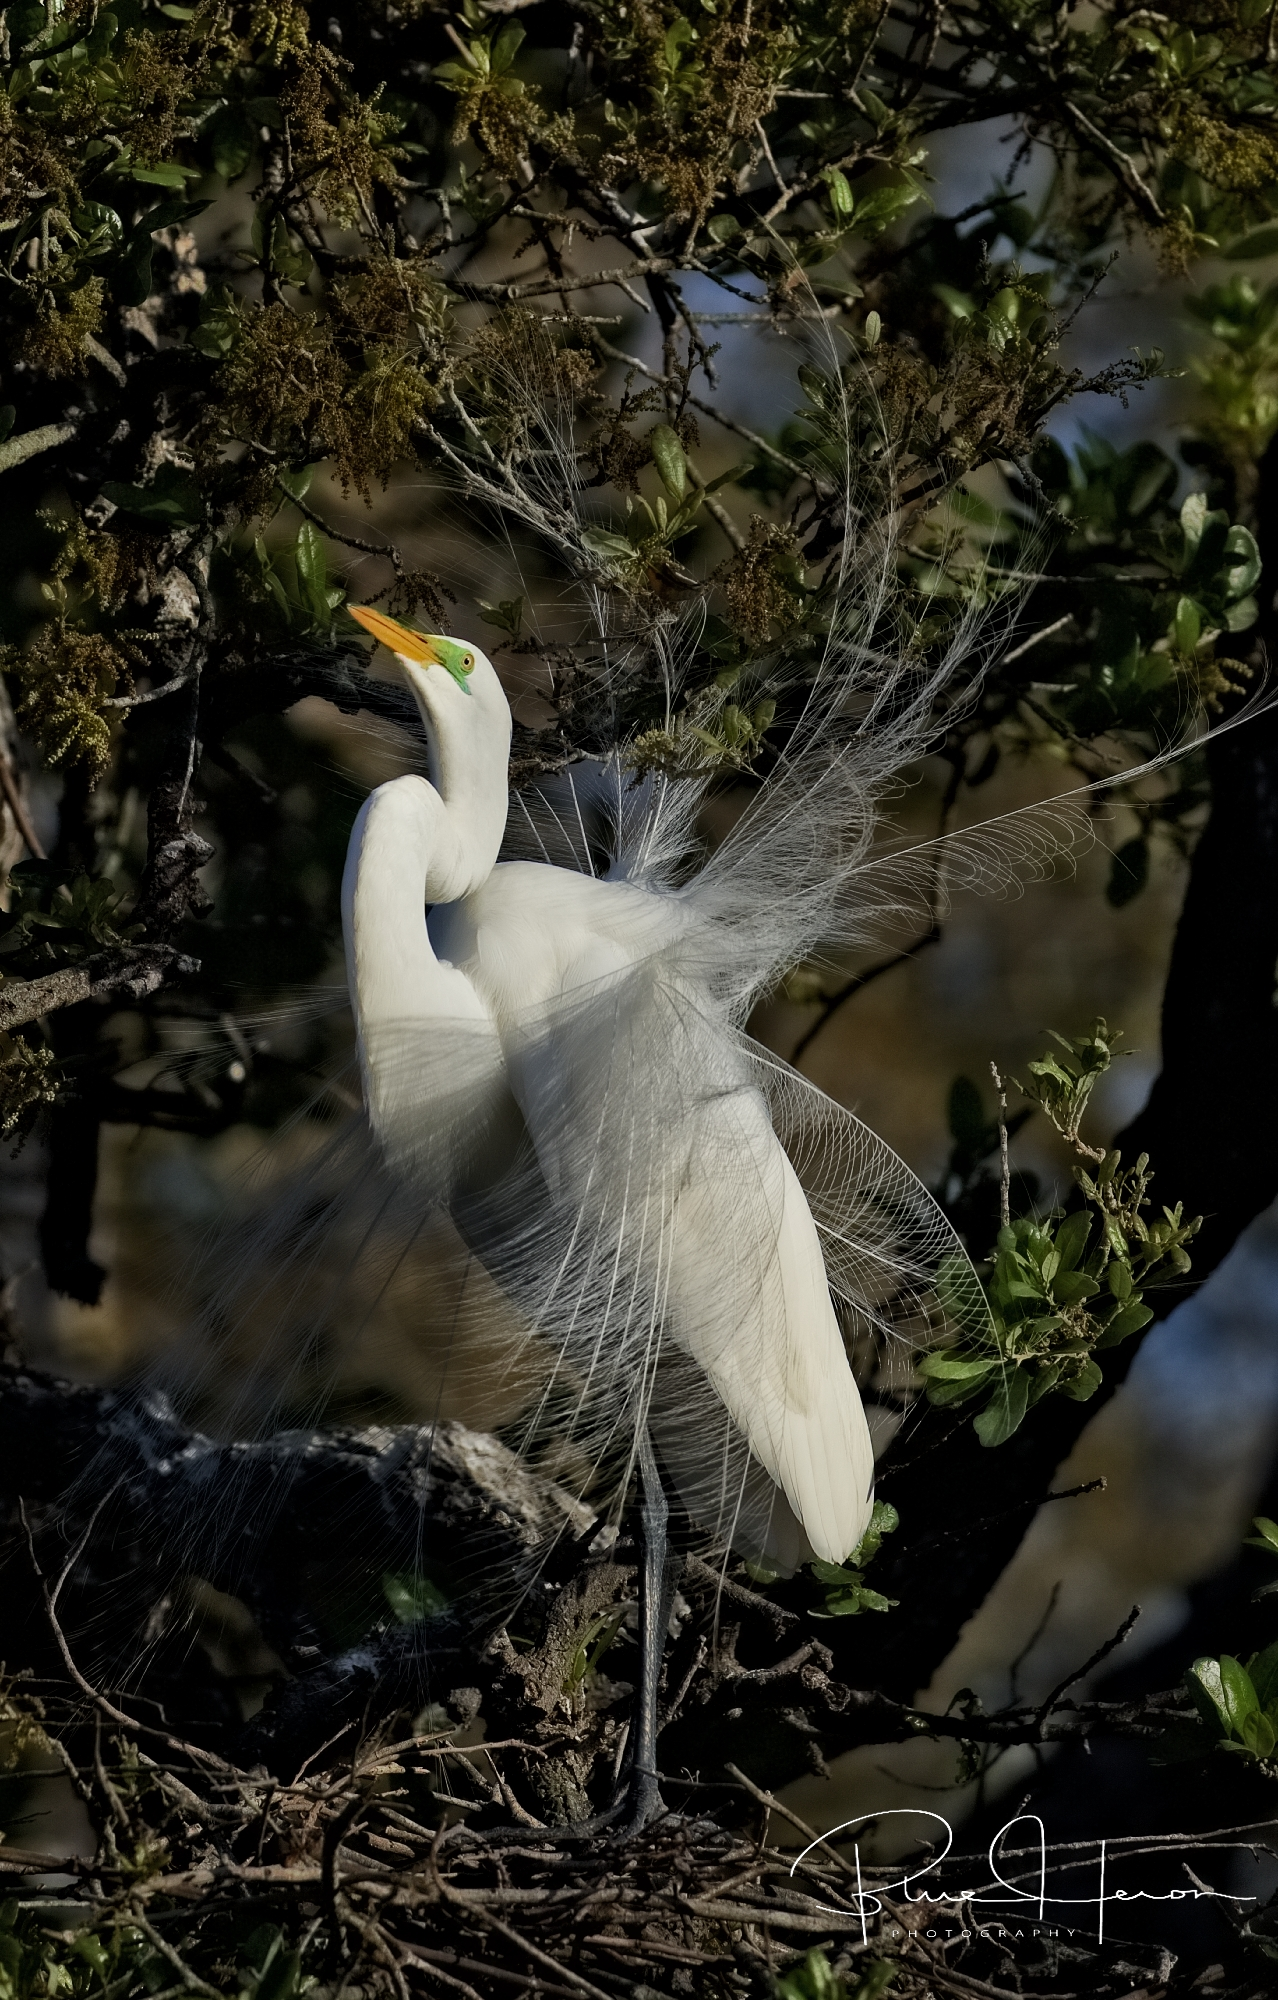 Another Great Egret Display